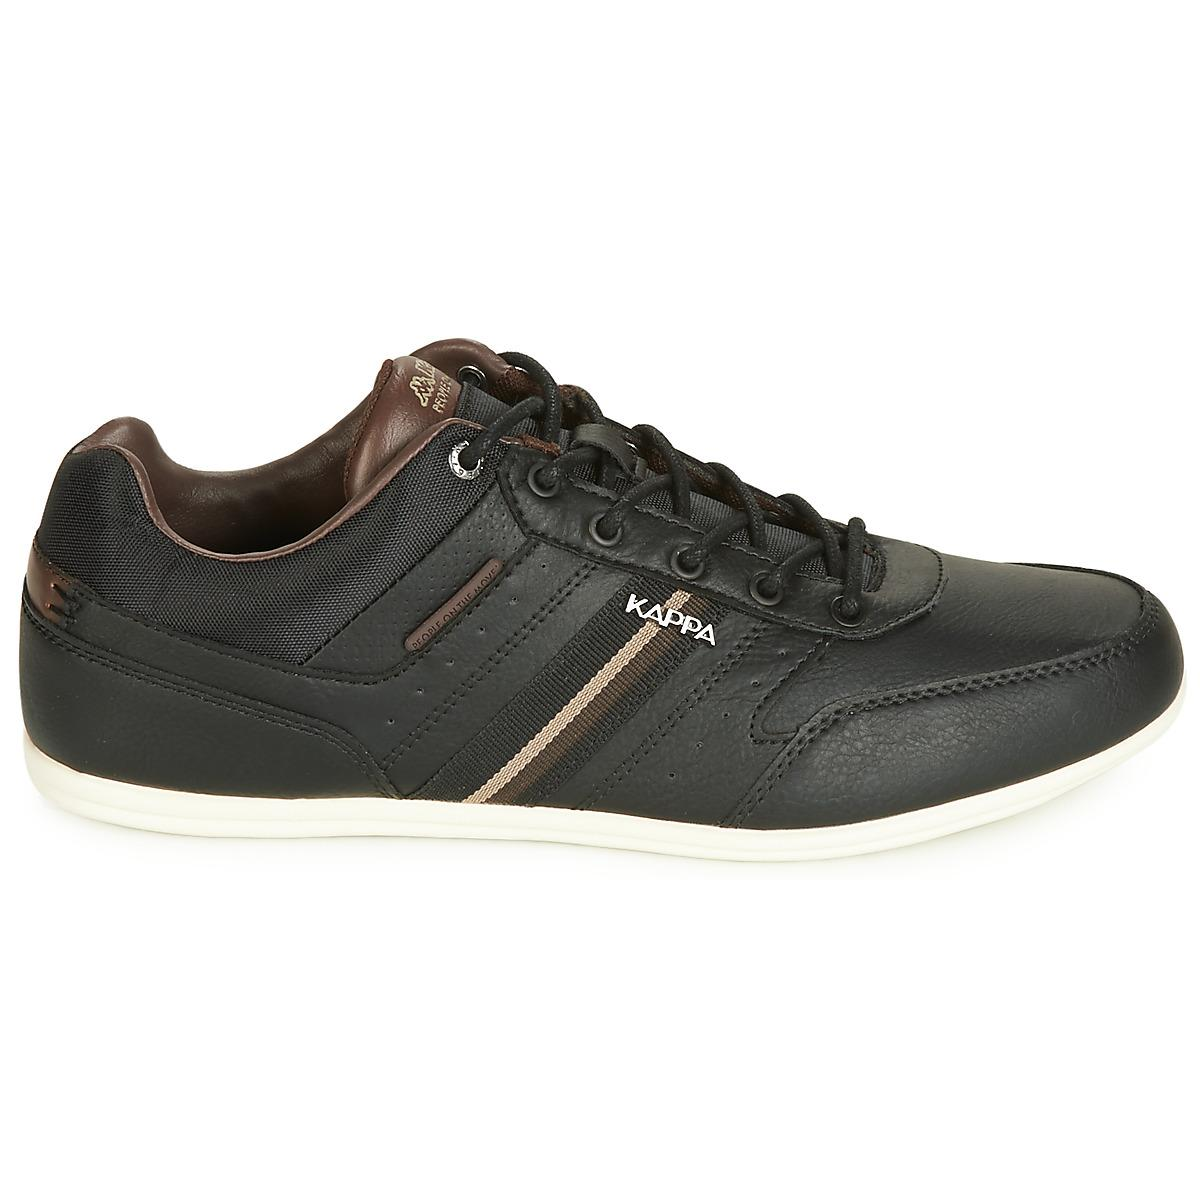 965cebe2d3b ... Kappa - Whoole Men's Shoes (trainers) In Black for Men - Lyst. Visit  Spartoo. Tap to visit site